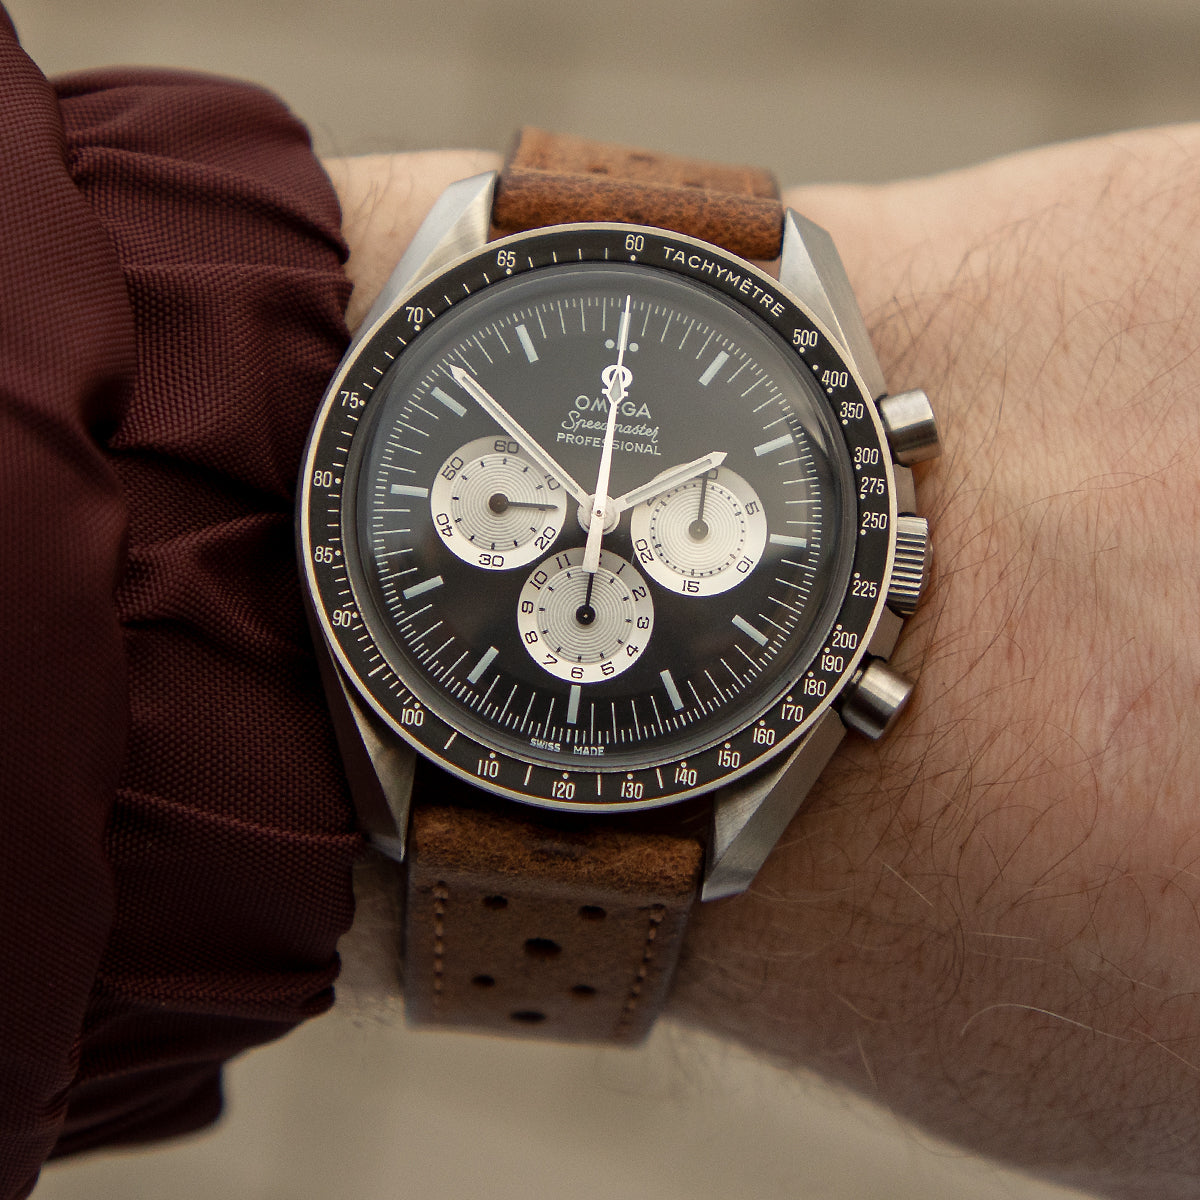 JPM Racing strap in peanut on the wrist with Omega Speedmaster